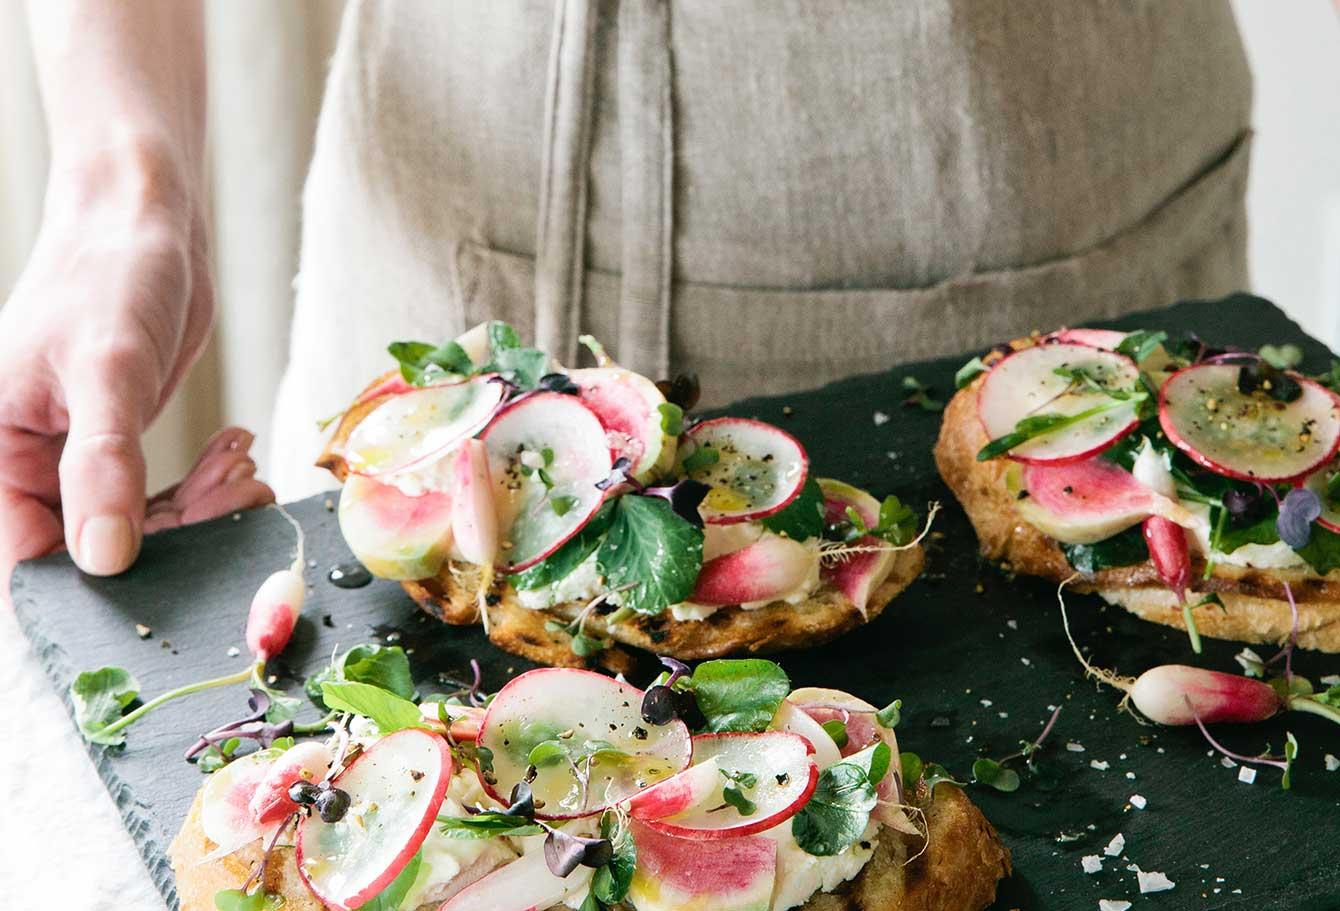 Tray of toast with radishes